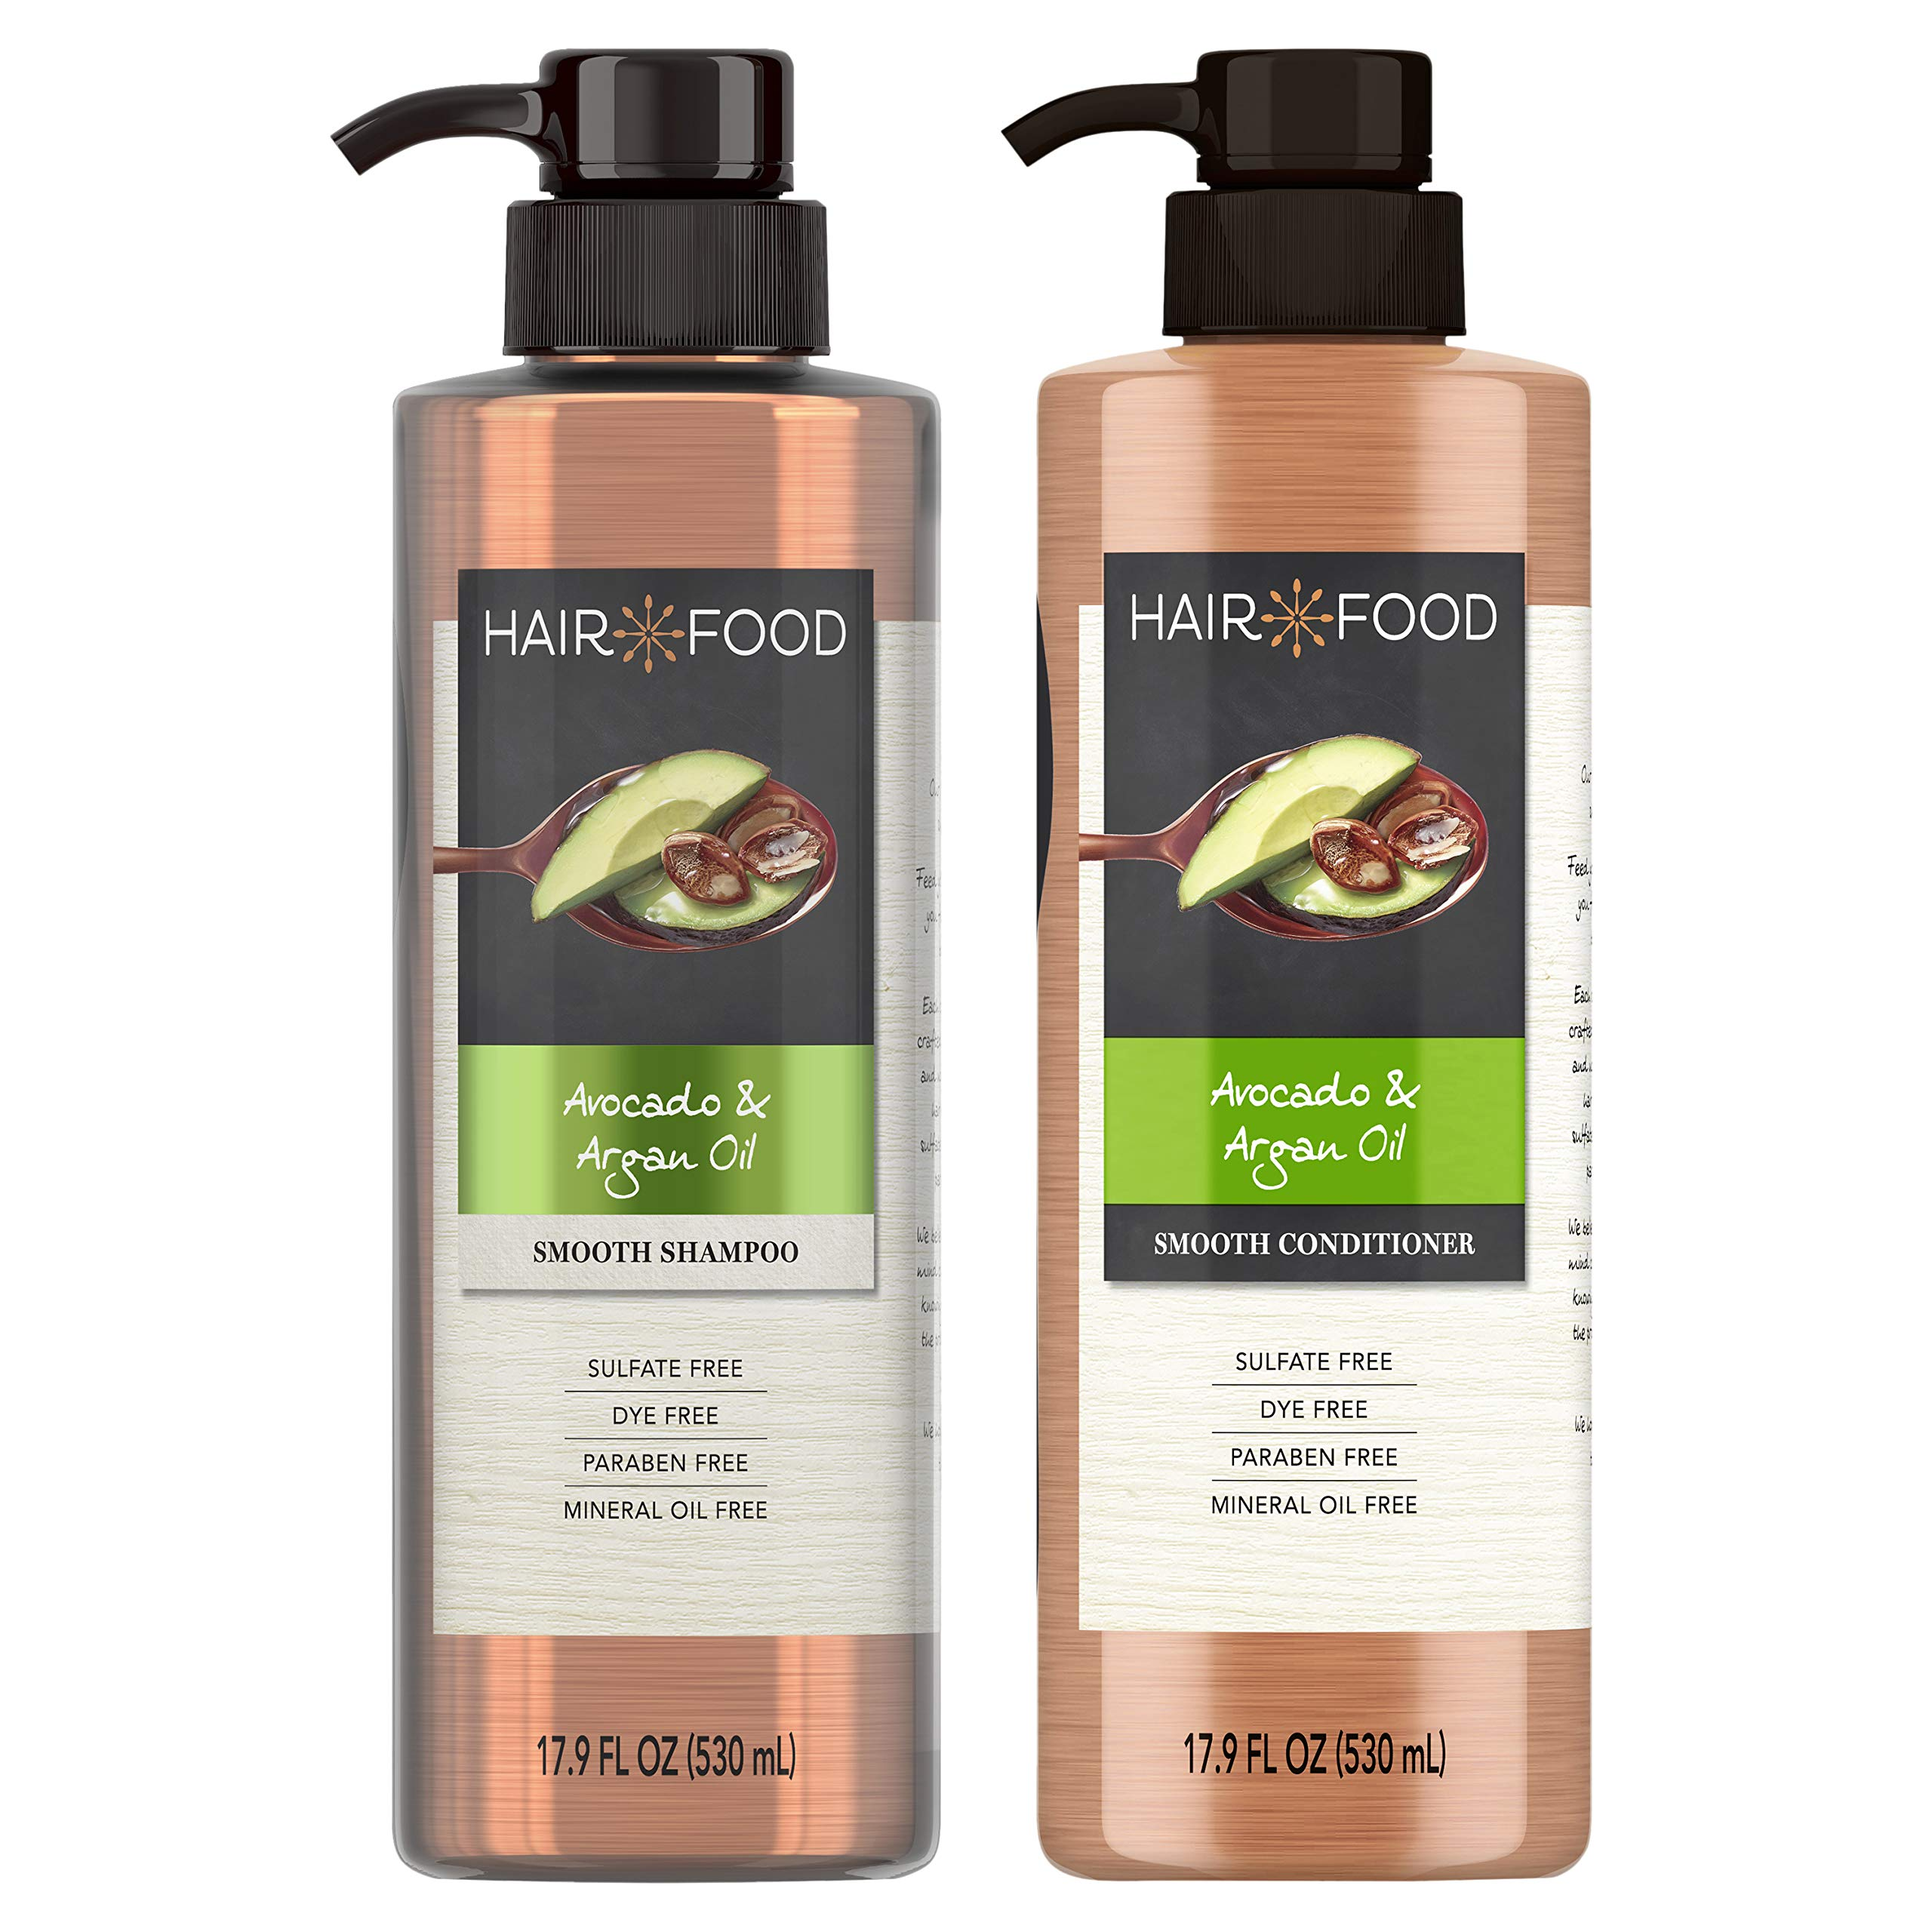 Hair Food, Shampoo and Sulfate Free Conditioner Kit, Dye Free, Argan Oil & Avacado Smoothing Formula, 17.9 fl oz, Dual Pack